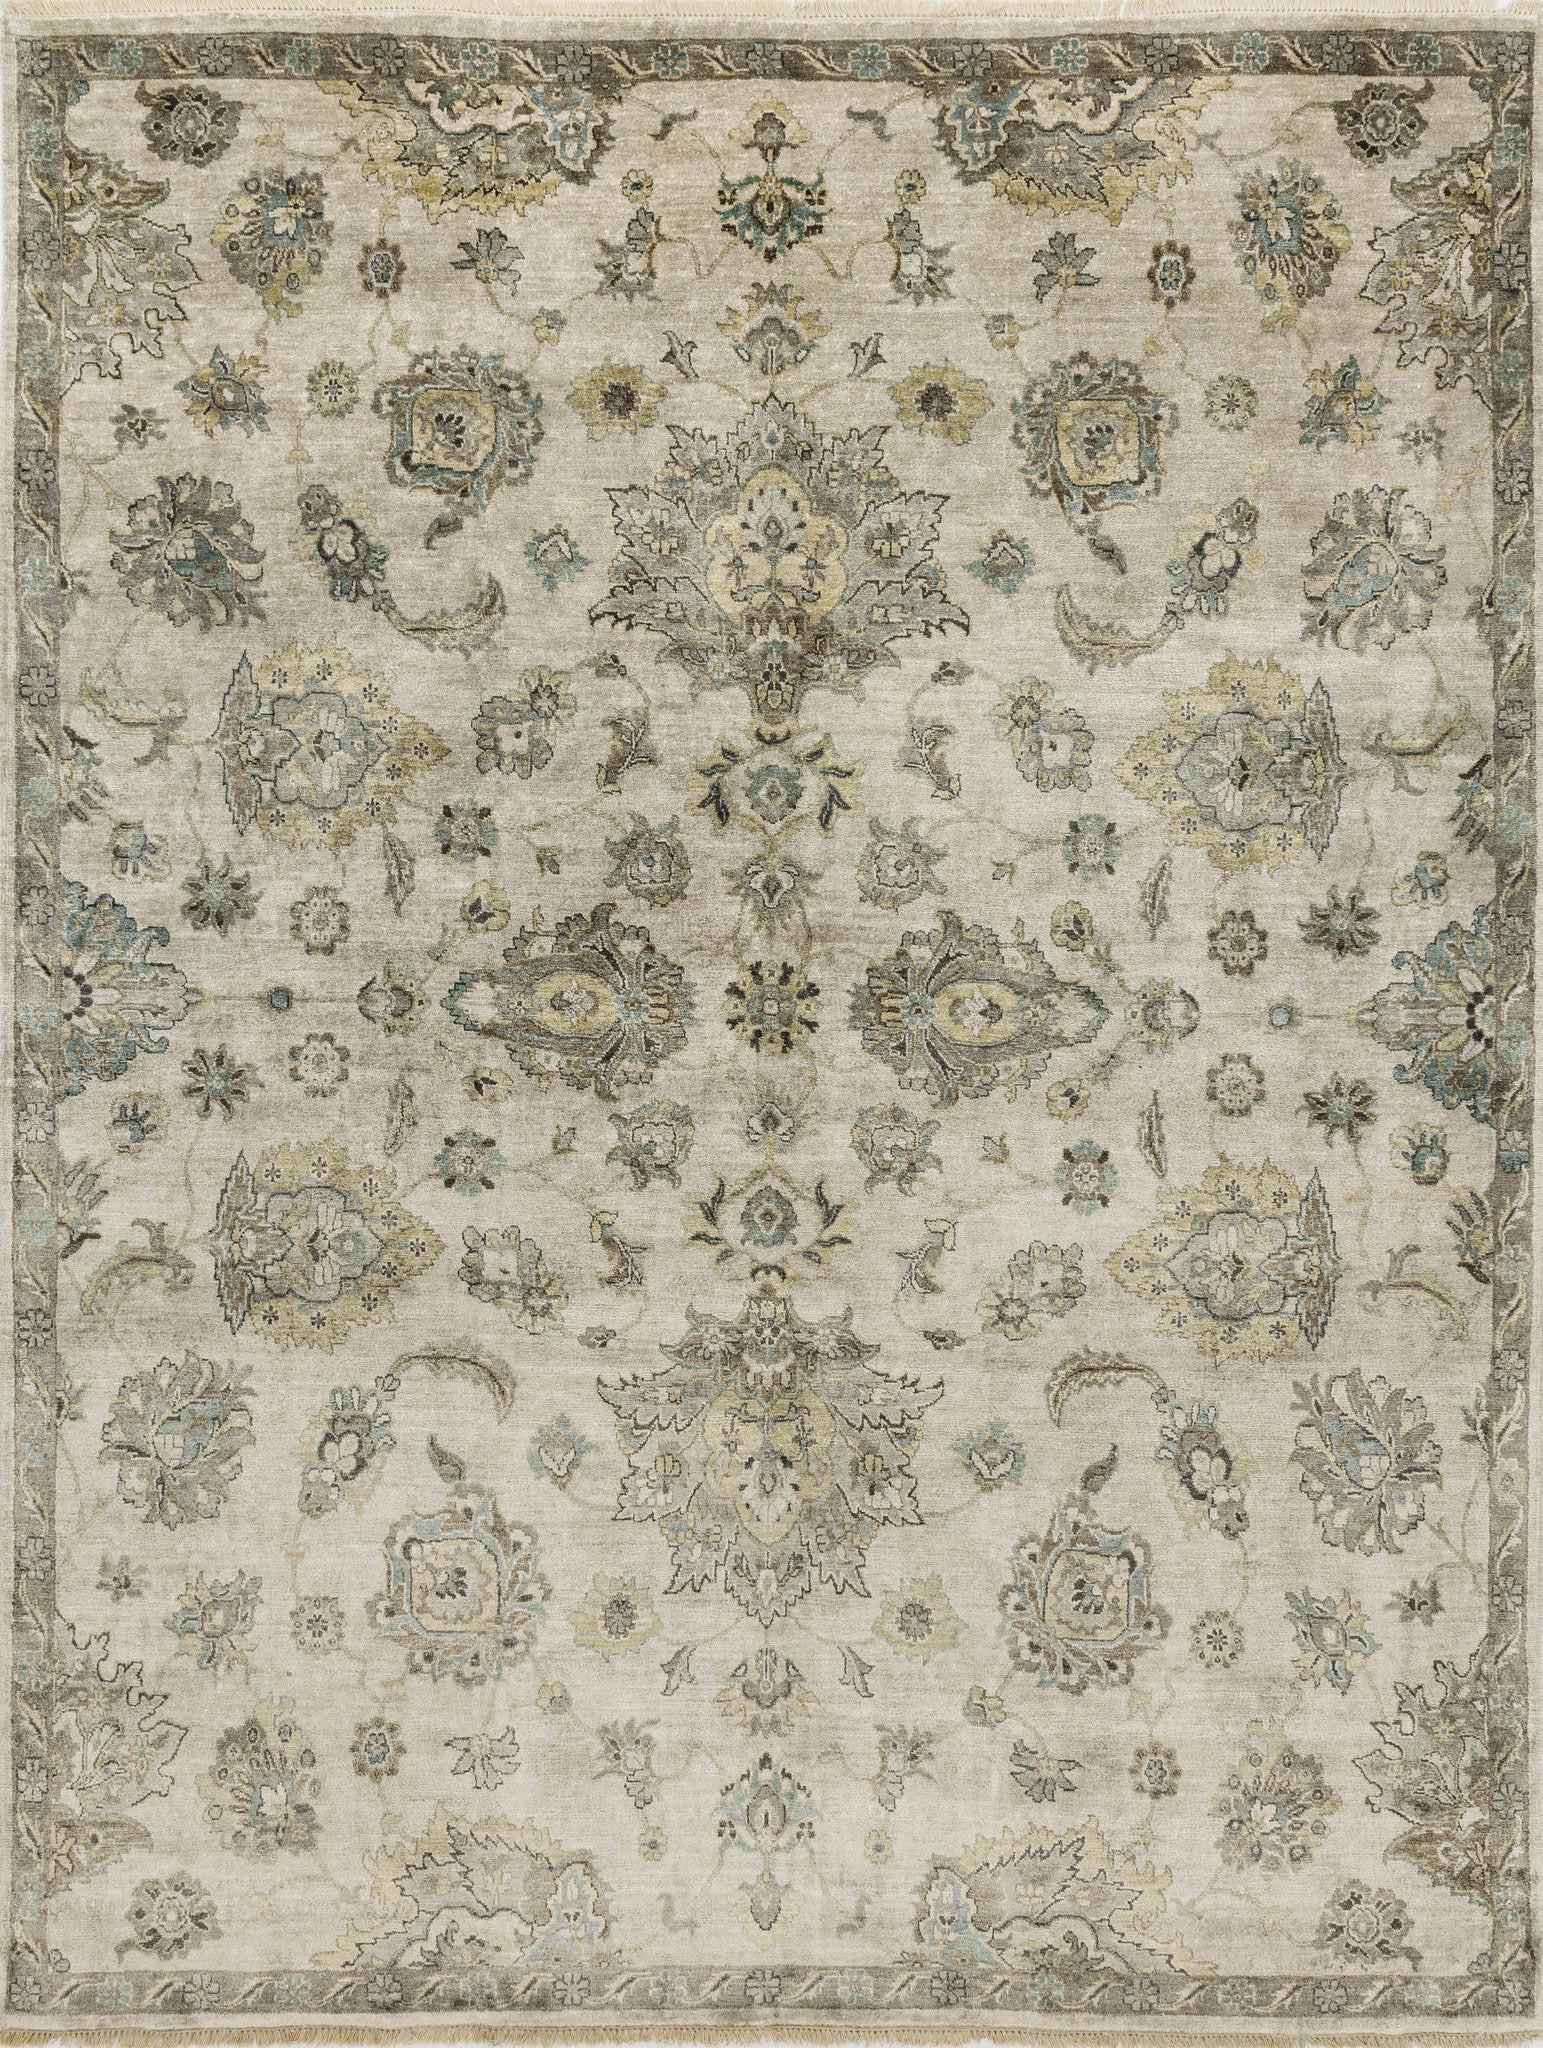 Loloi Kensington KG-02 Pewter Area Rug by Henrietta Spencer-Churchill main image